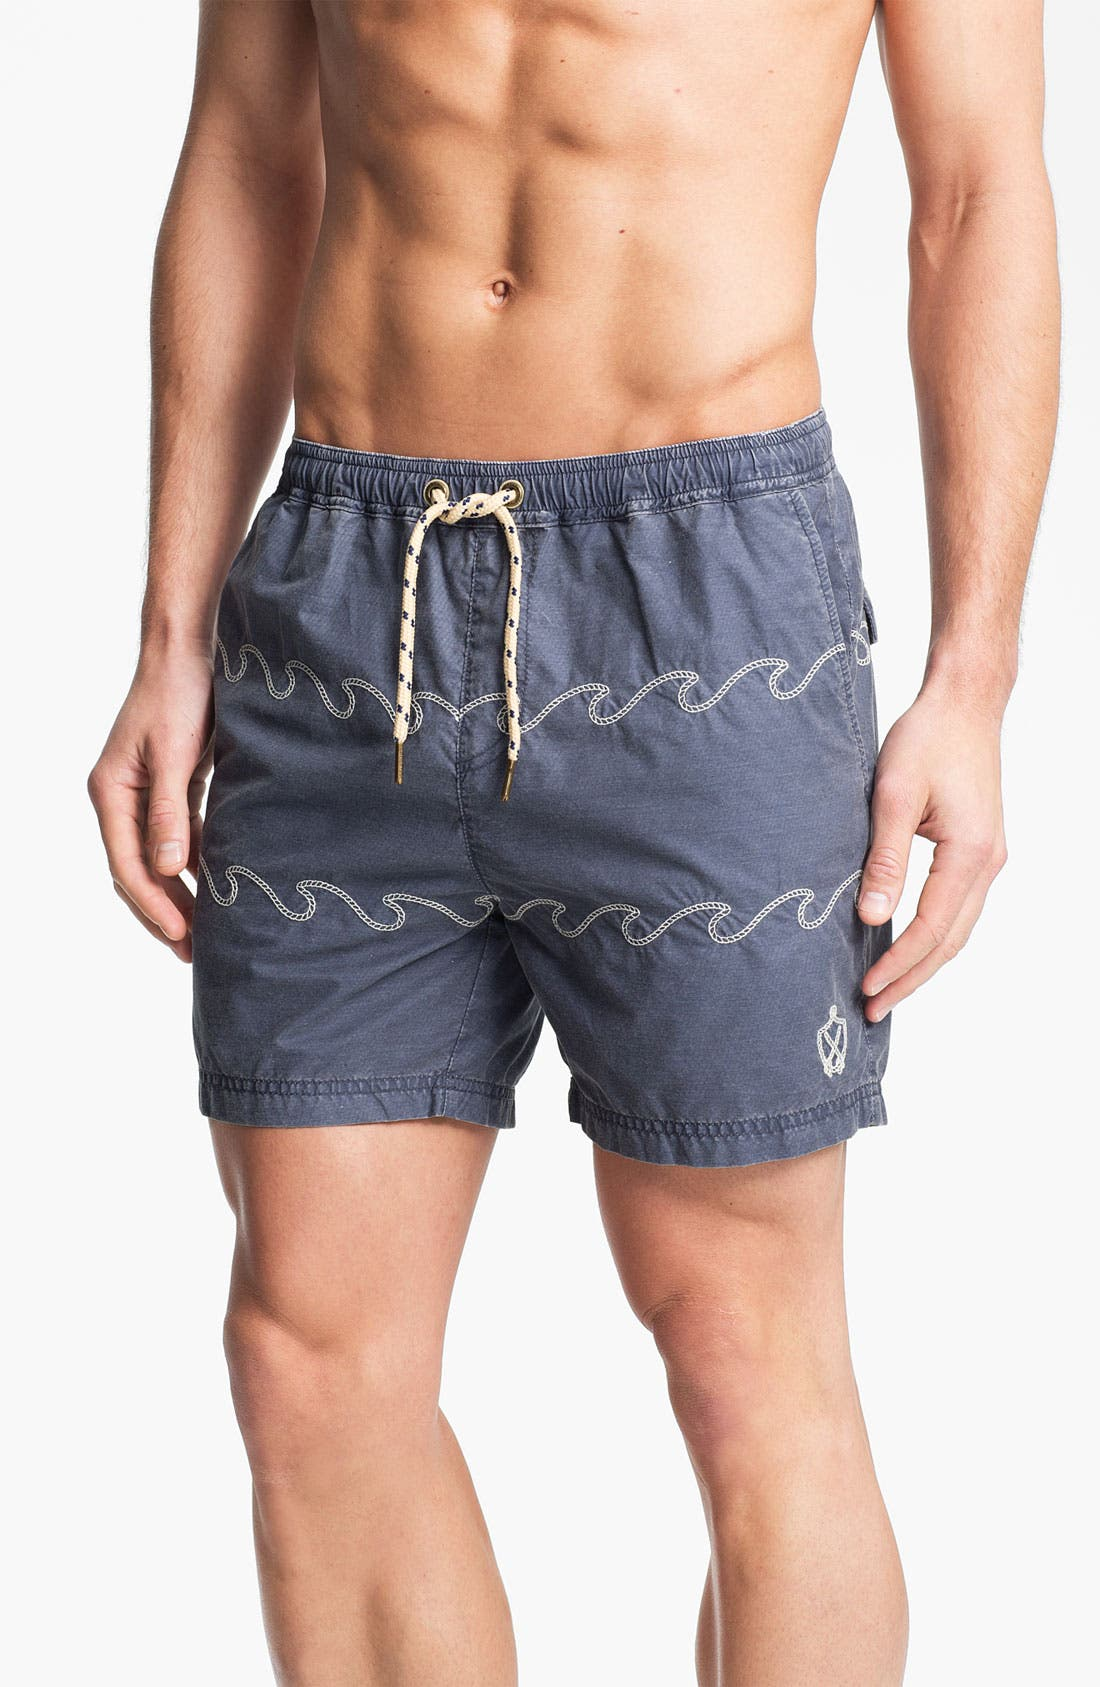 Alternate Image 1 Selected - Zanerobe 'No Comply' Swim Trunks (Online Exclusive)